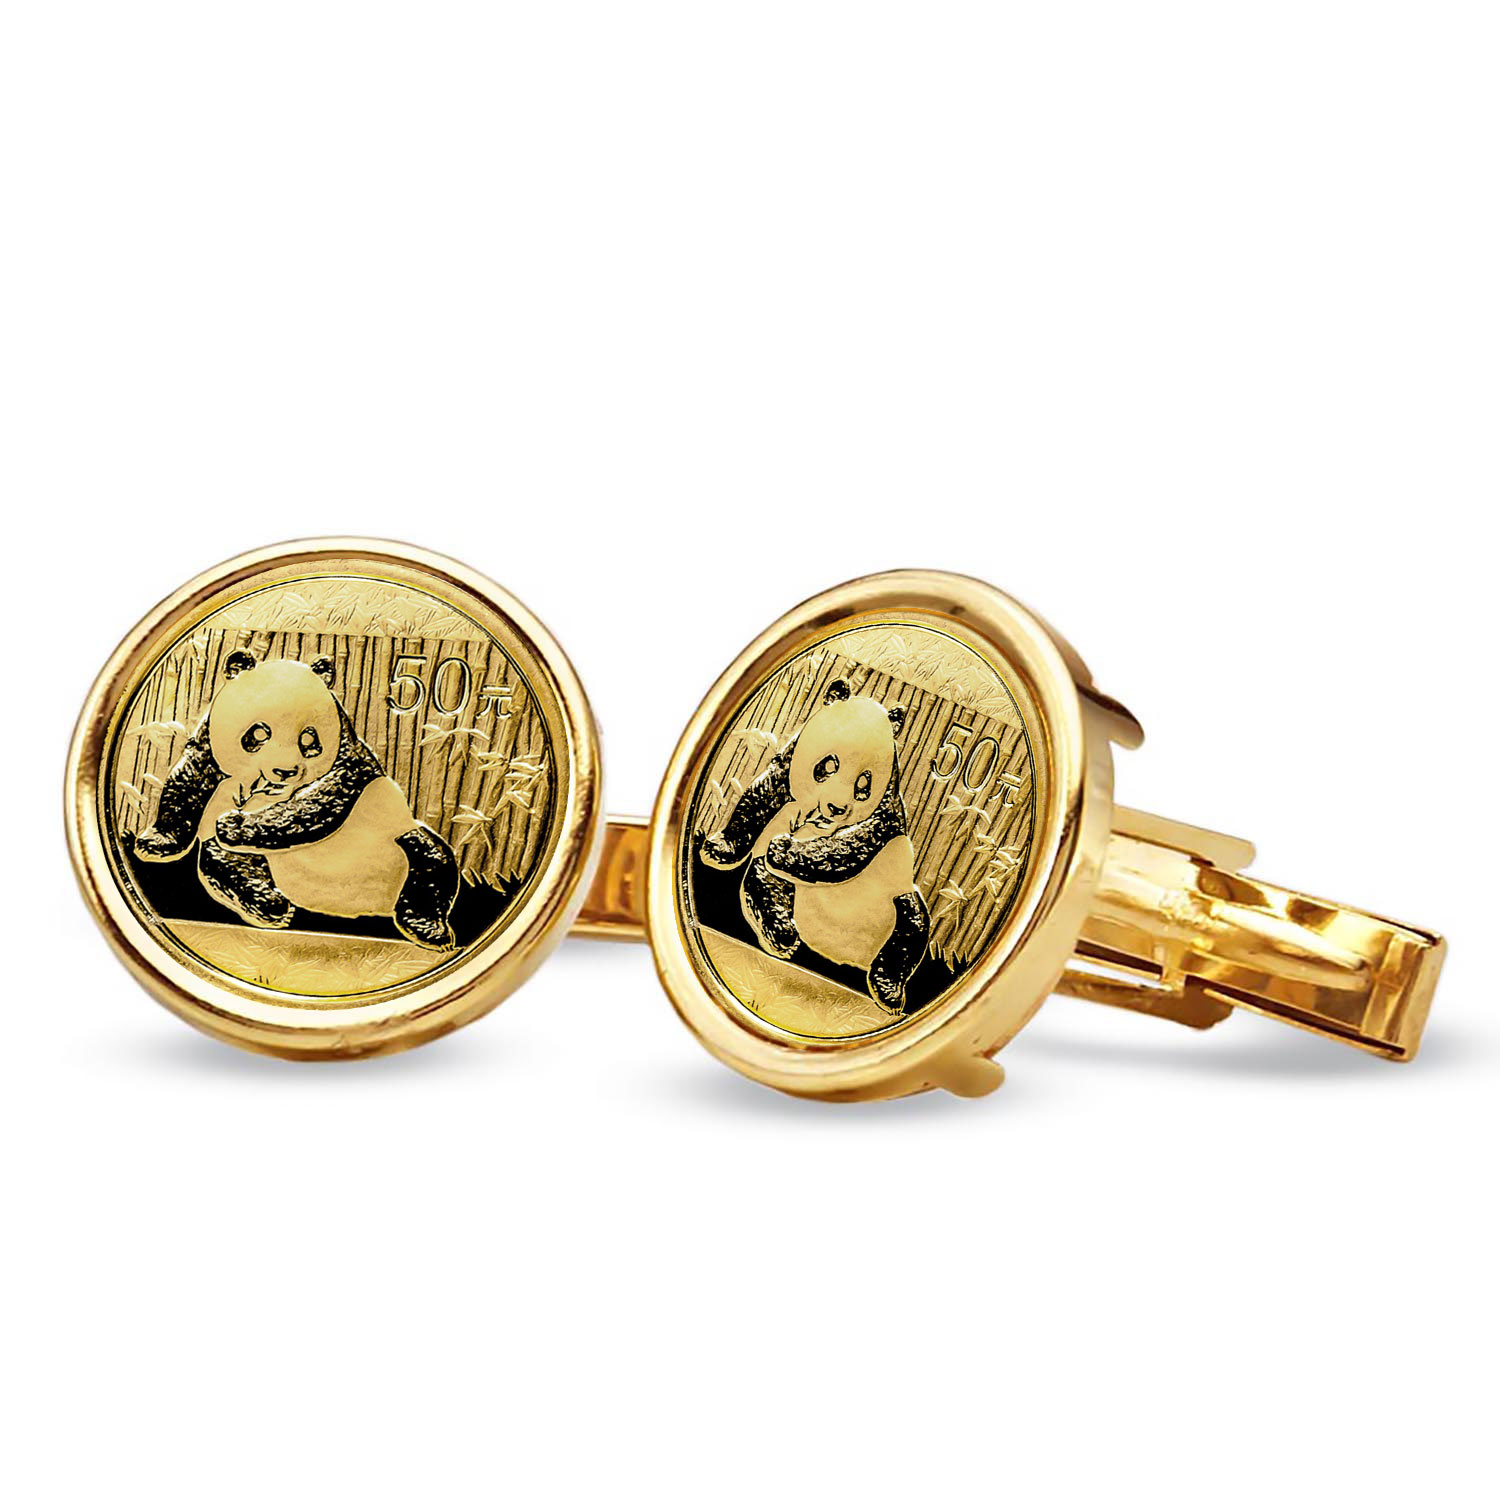 2015 1/10 oz Gold Panda Cuff Links (Polished Plain)